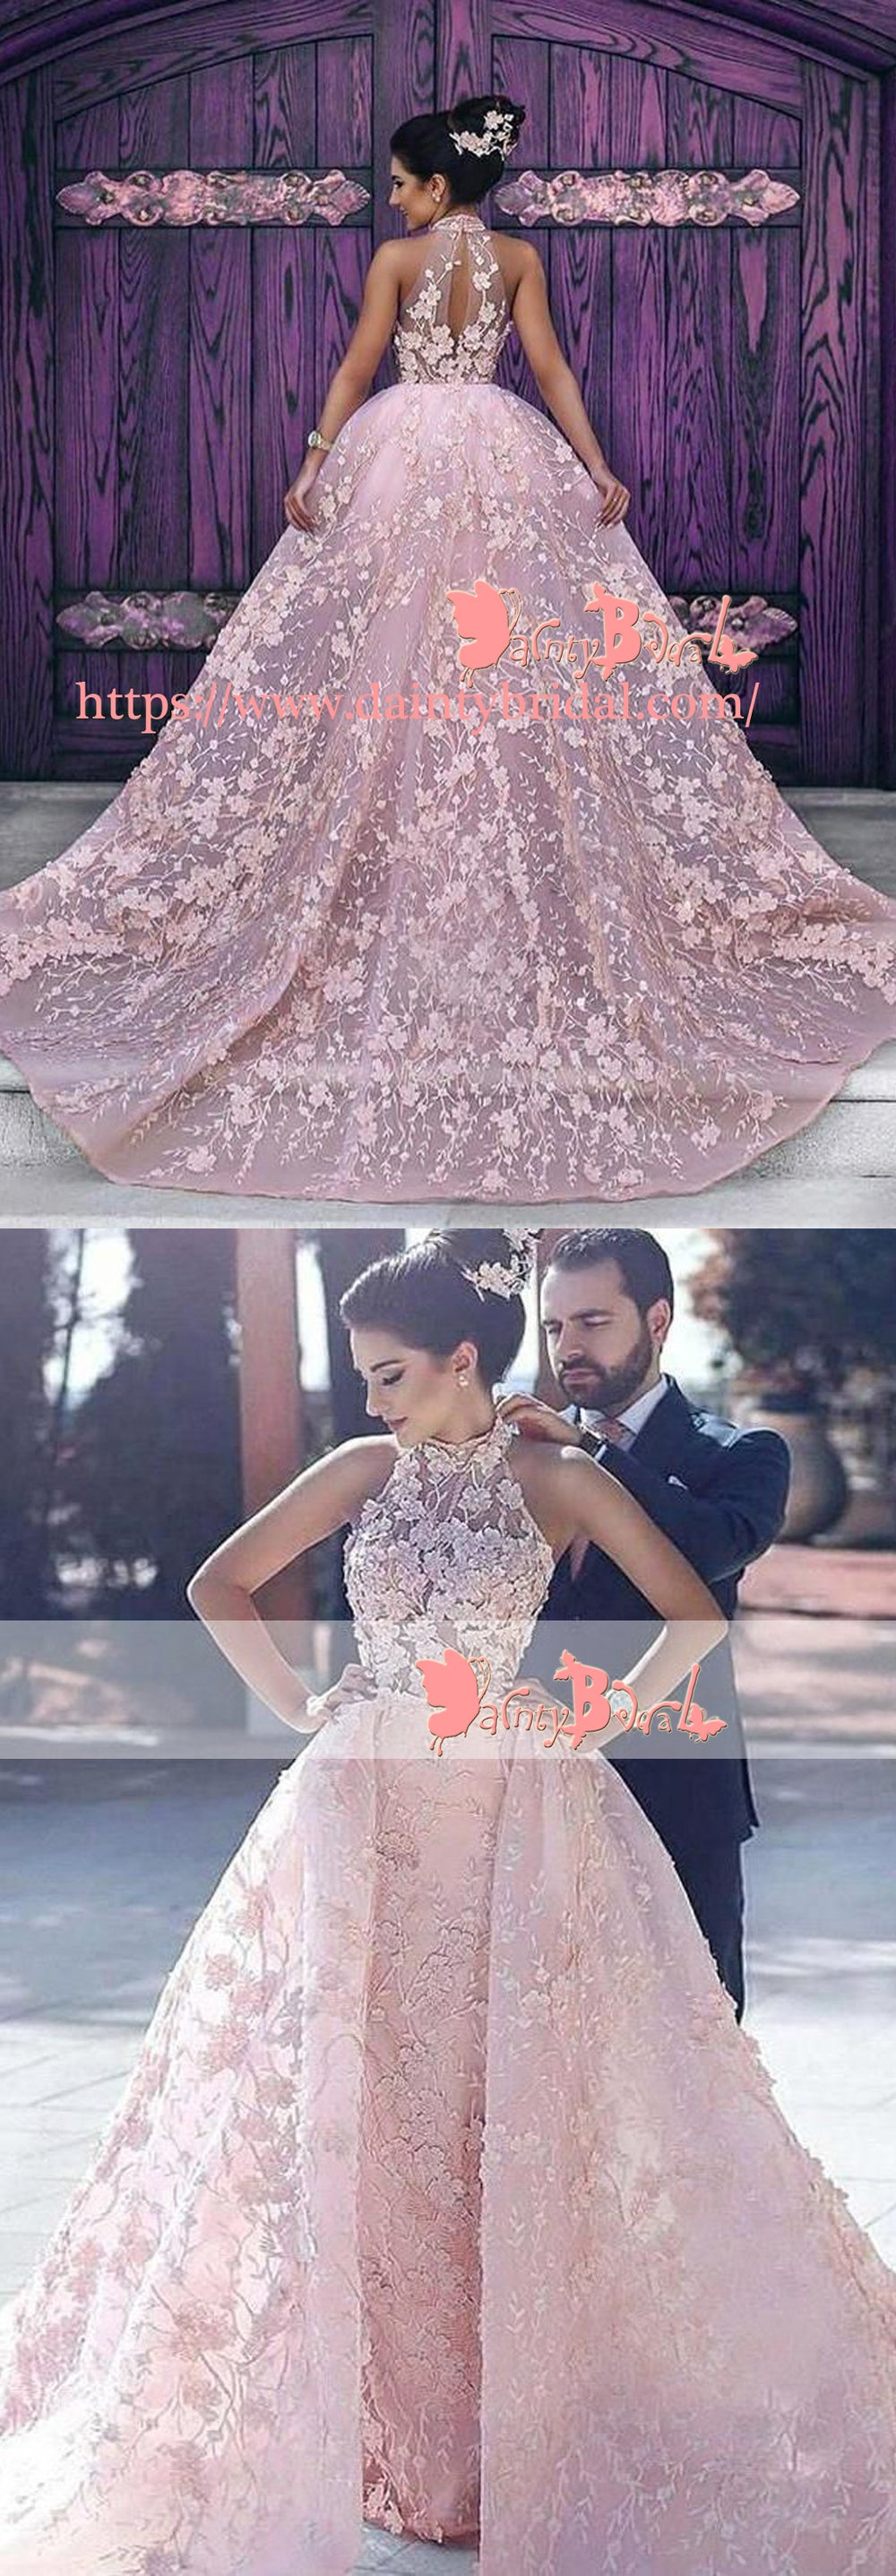 00e7f6e4c1 Blush Pink Lace Appliques High Neck Sleeveless Gorgeous Princess Ball Gown  Prom Dresses. DB1051